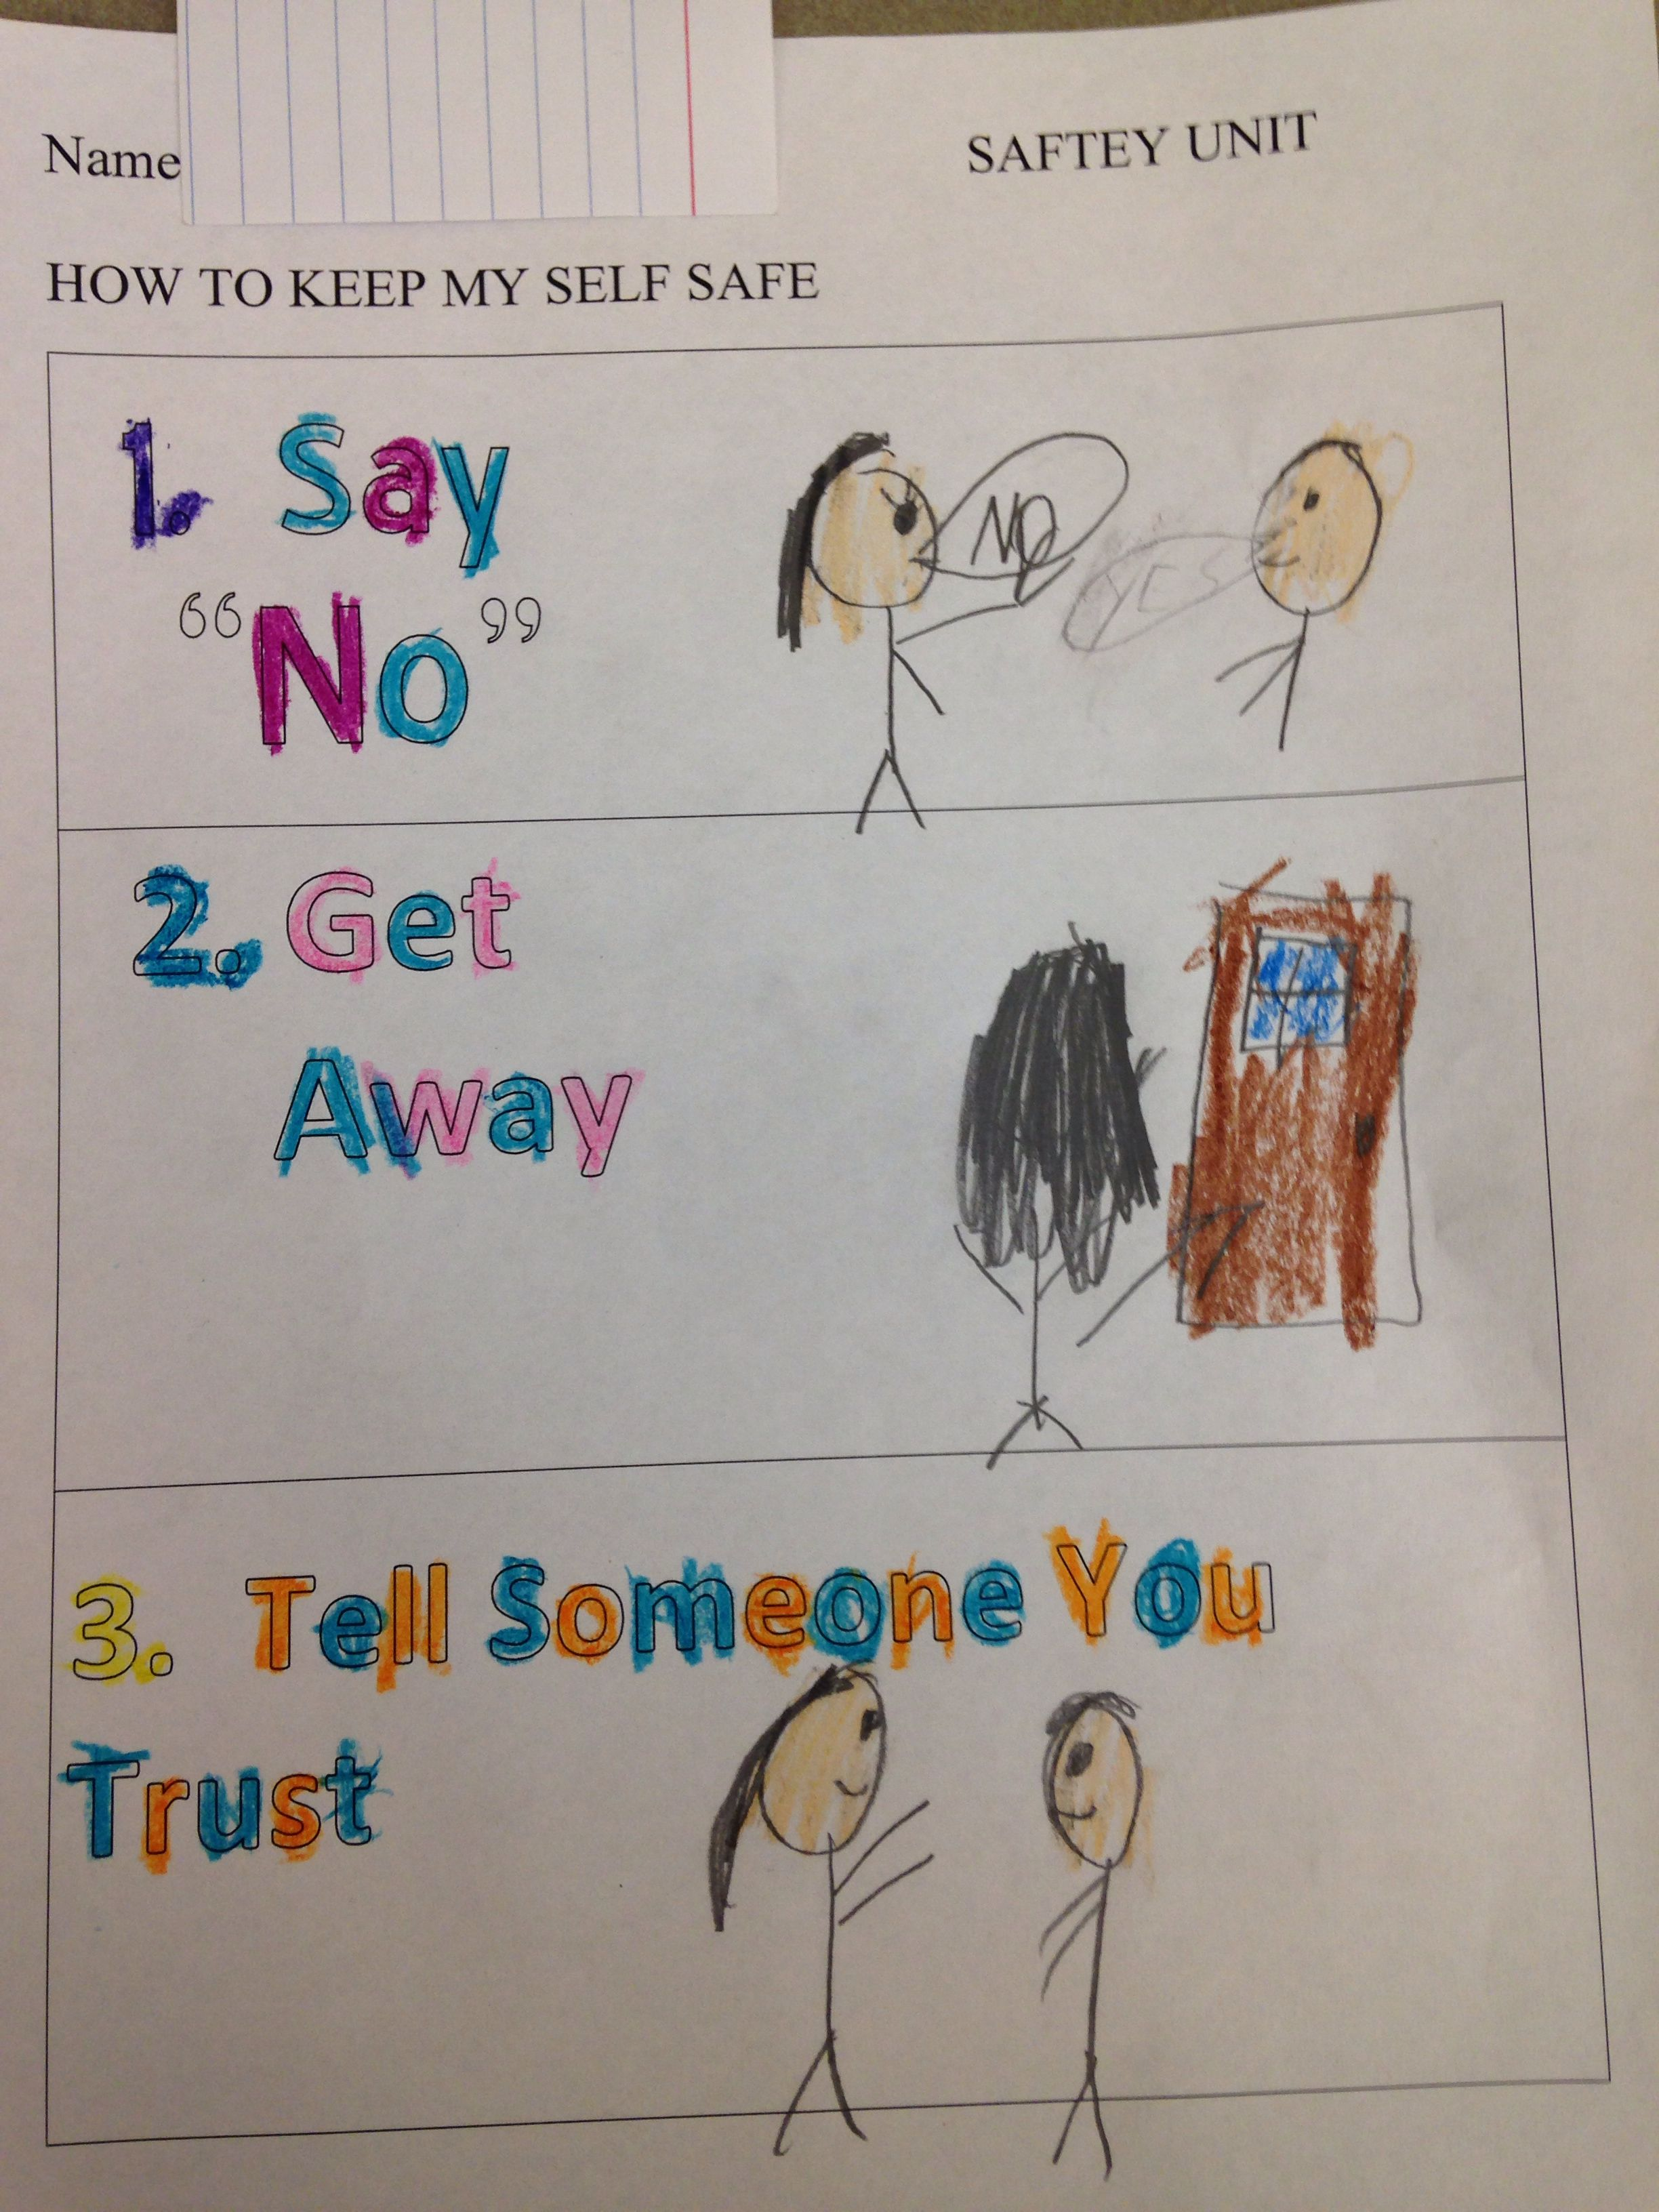 Worksheets From The First Lesson In My Safety Unit We Talked About What To Do If You Are In A